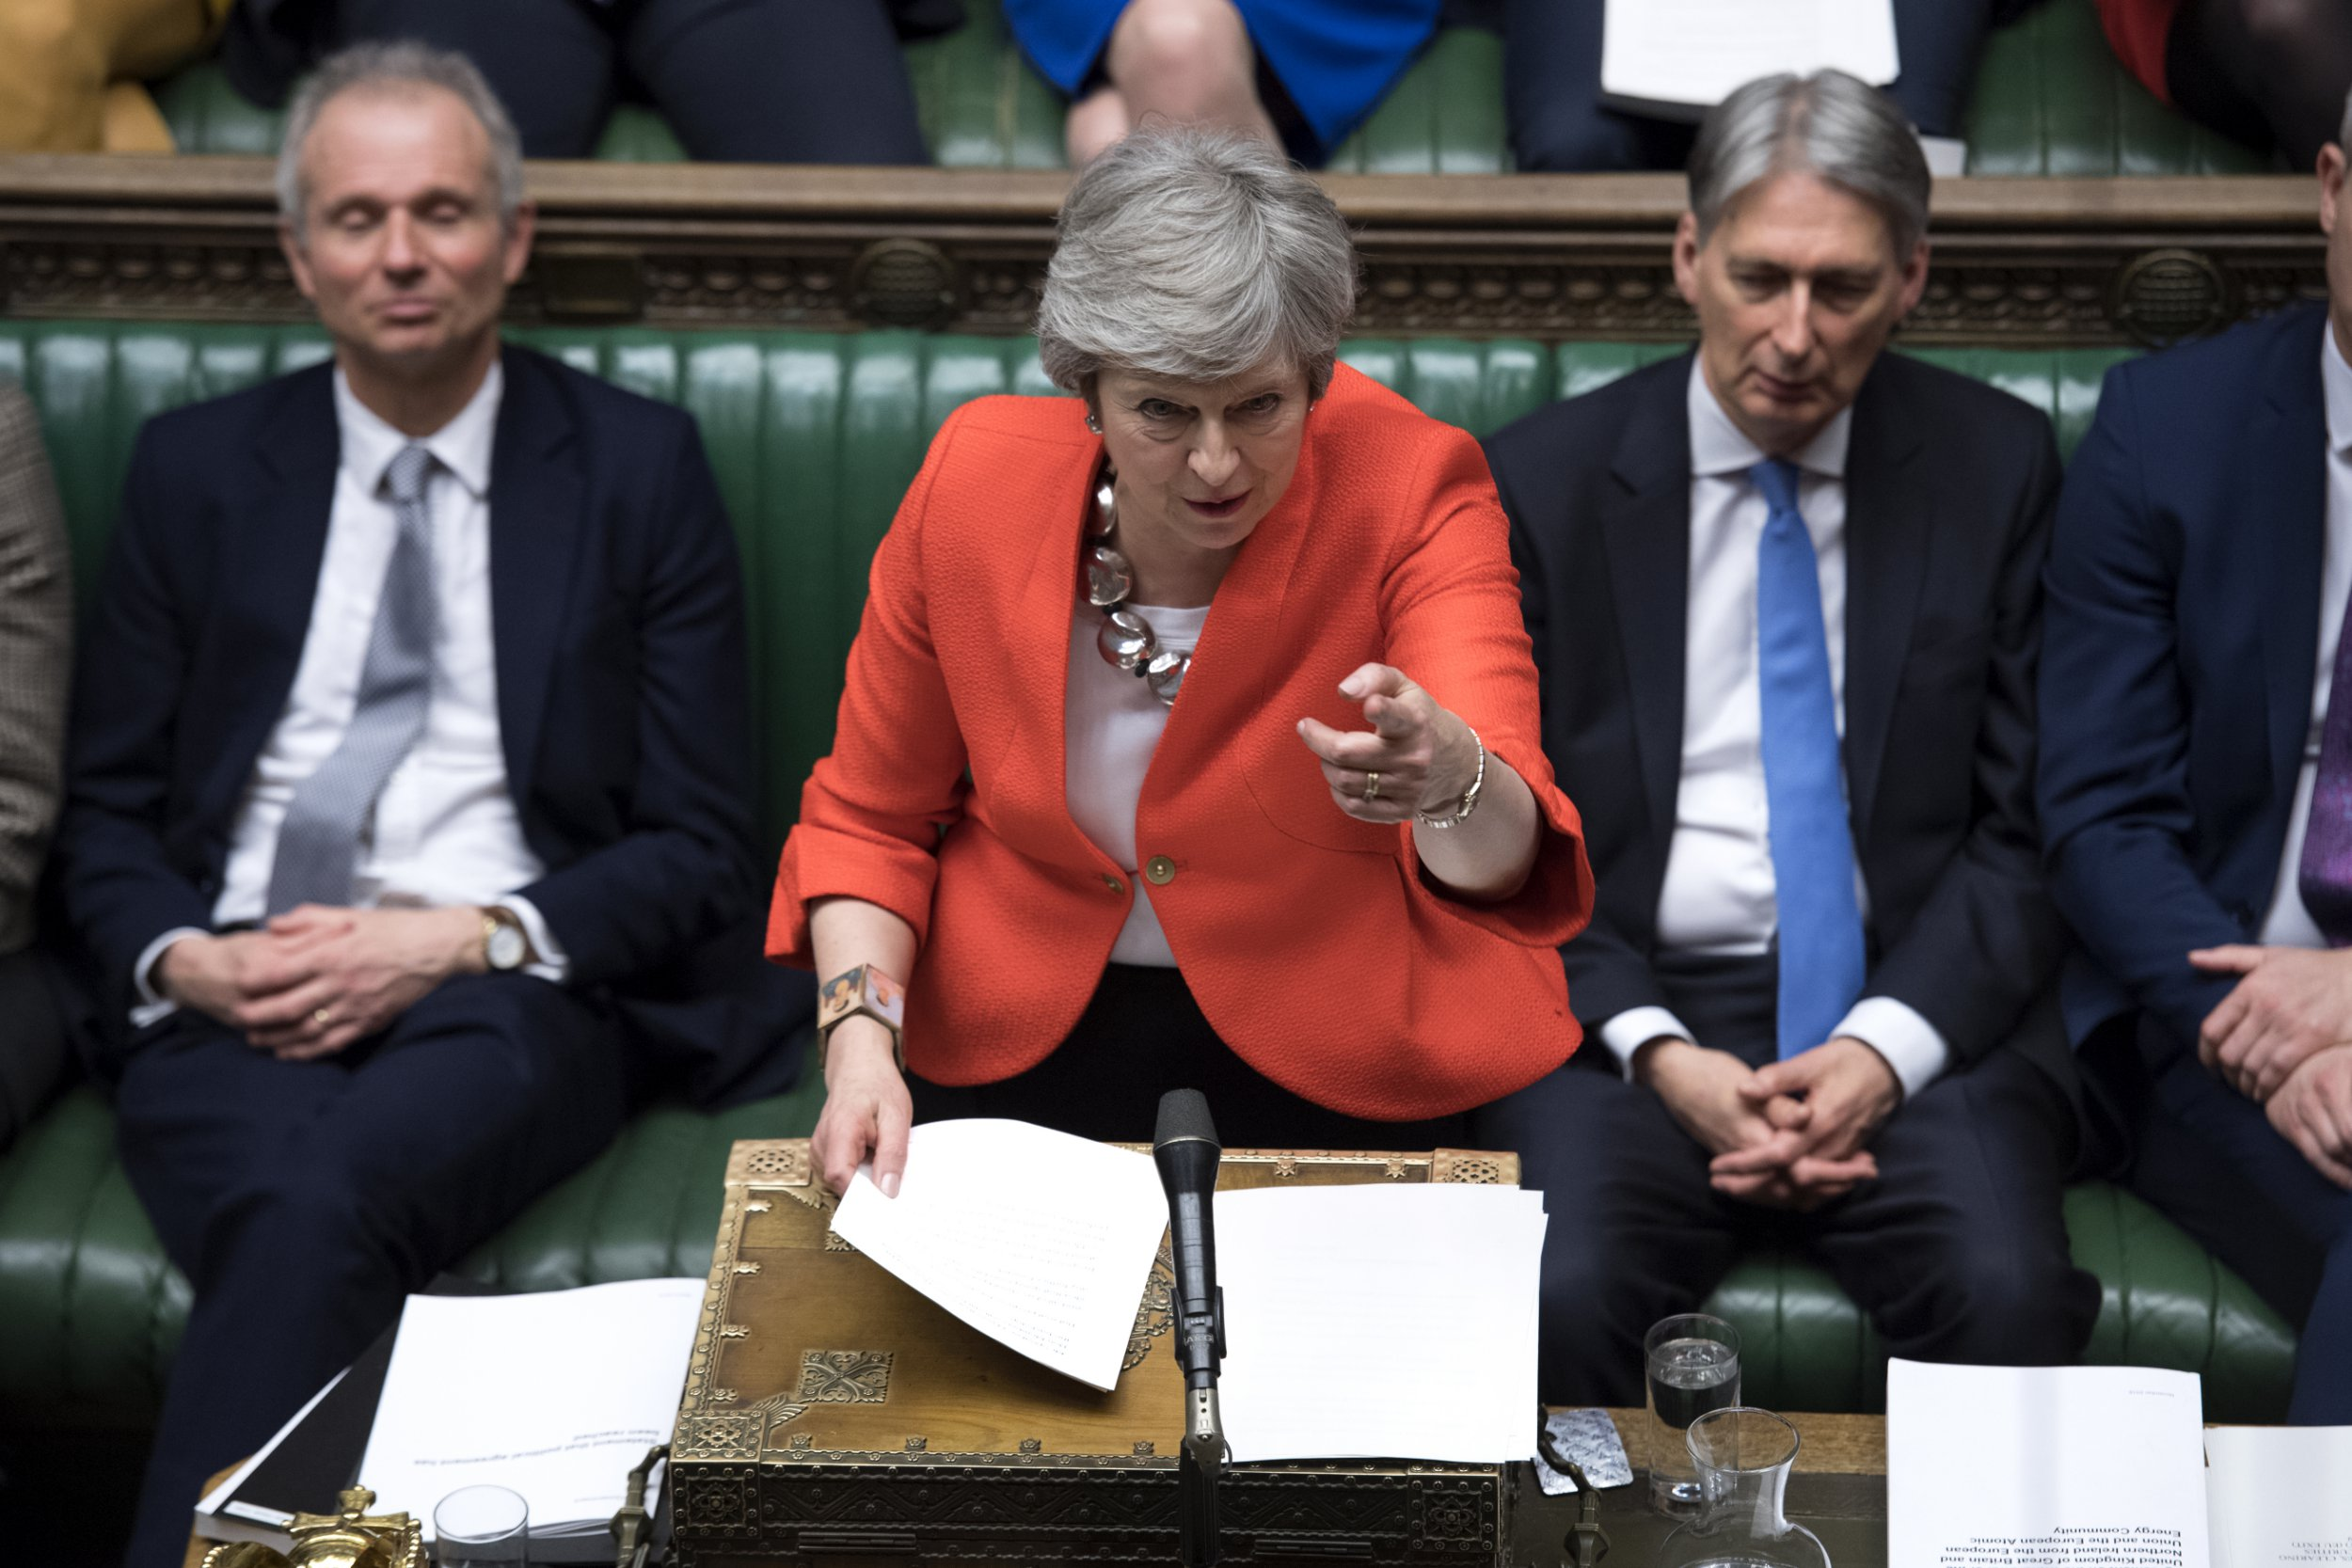 Third meaningful vote won't happen tomorrow as Brexit chaos continues